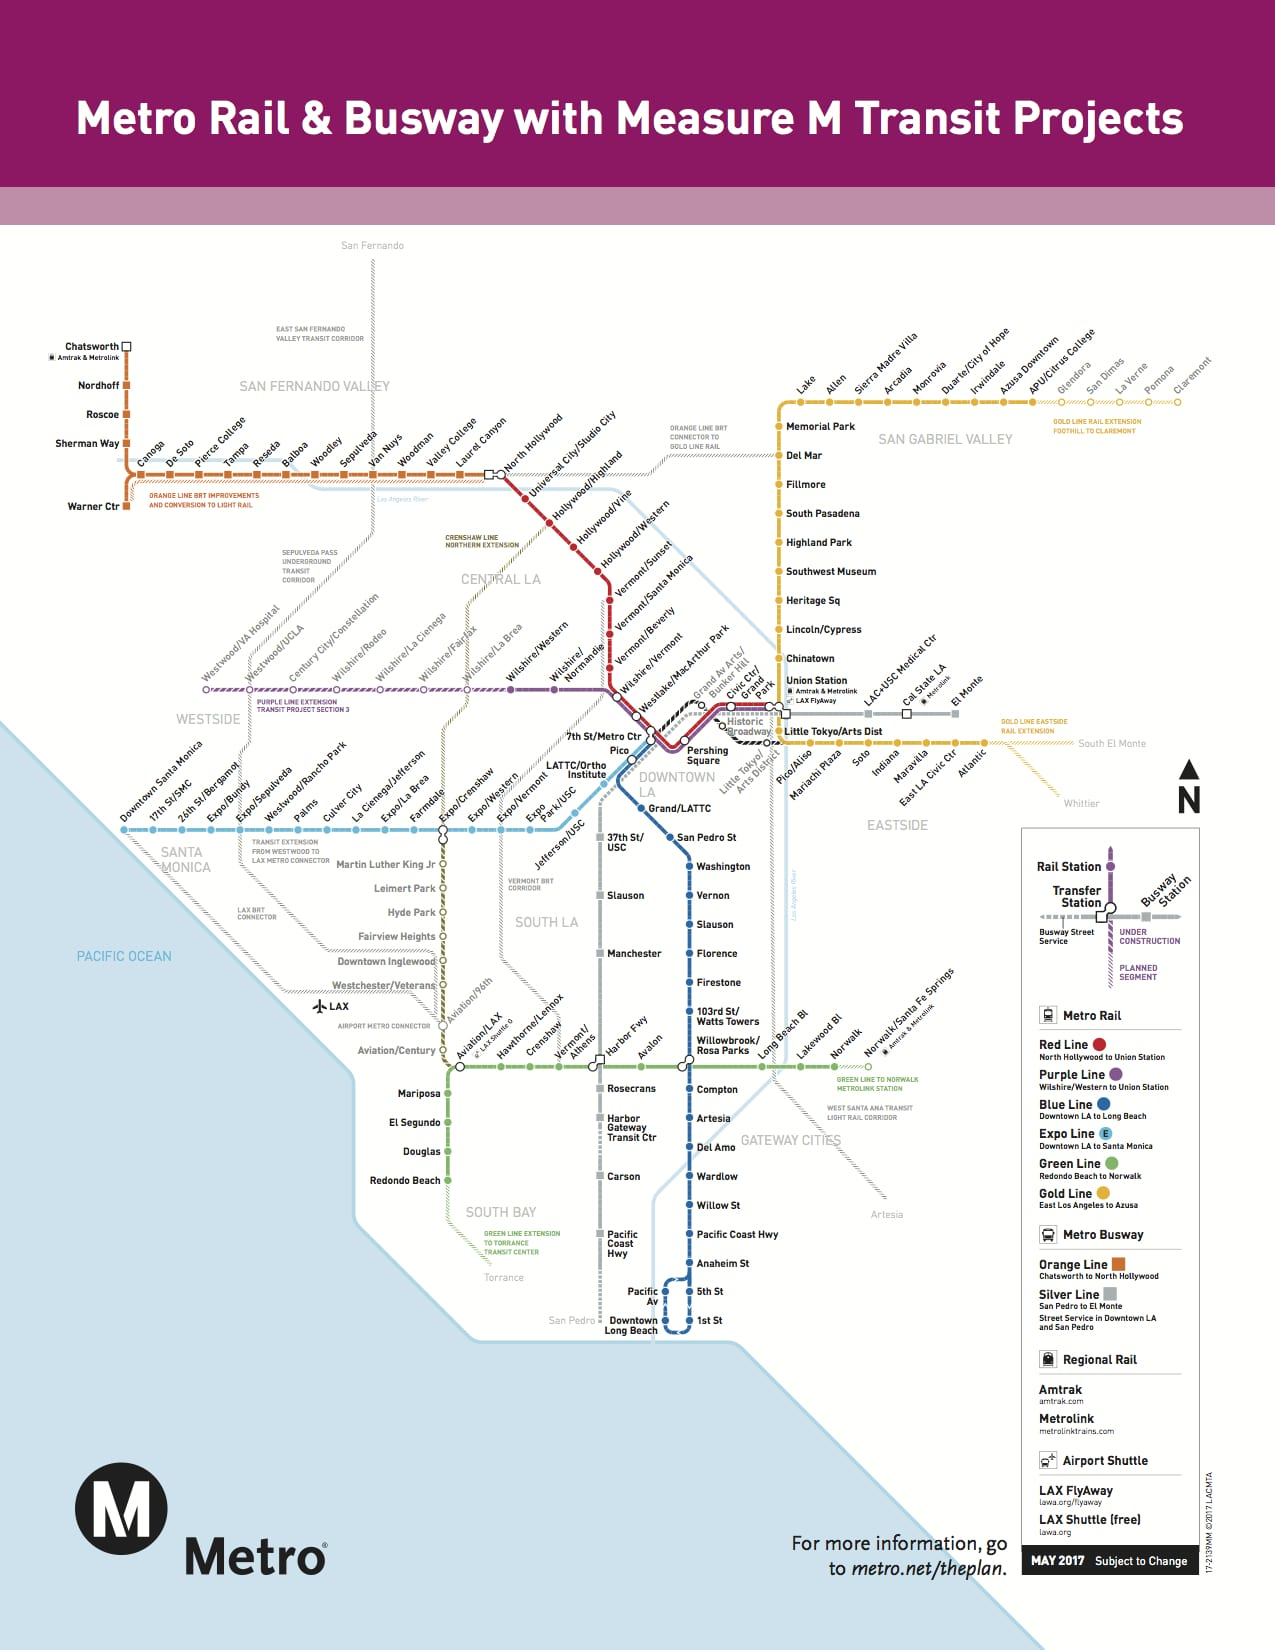 L.A. Olympics and Paralympics: what our transit system will ... on new haven geographical map, metro-north track map, la metro line map, new haven rail map, harlem new york map, metro-north train fairfield county map, new haven indiana zoning map, new haven city map, new haven florida map, metro-north connecticut map, metro-north map from westchester, west haven metro-north map, metro-north route map, metro-north harlem line map, new haven prospect hill map, ct trolley line map, metro-north train line map, port jervis line map,